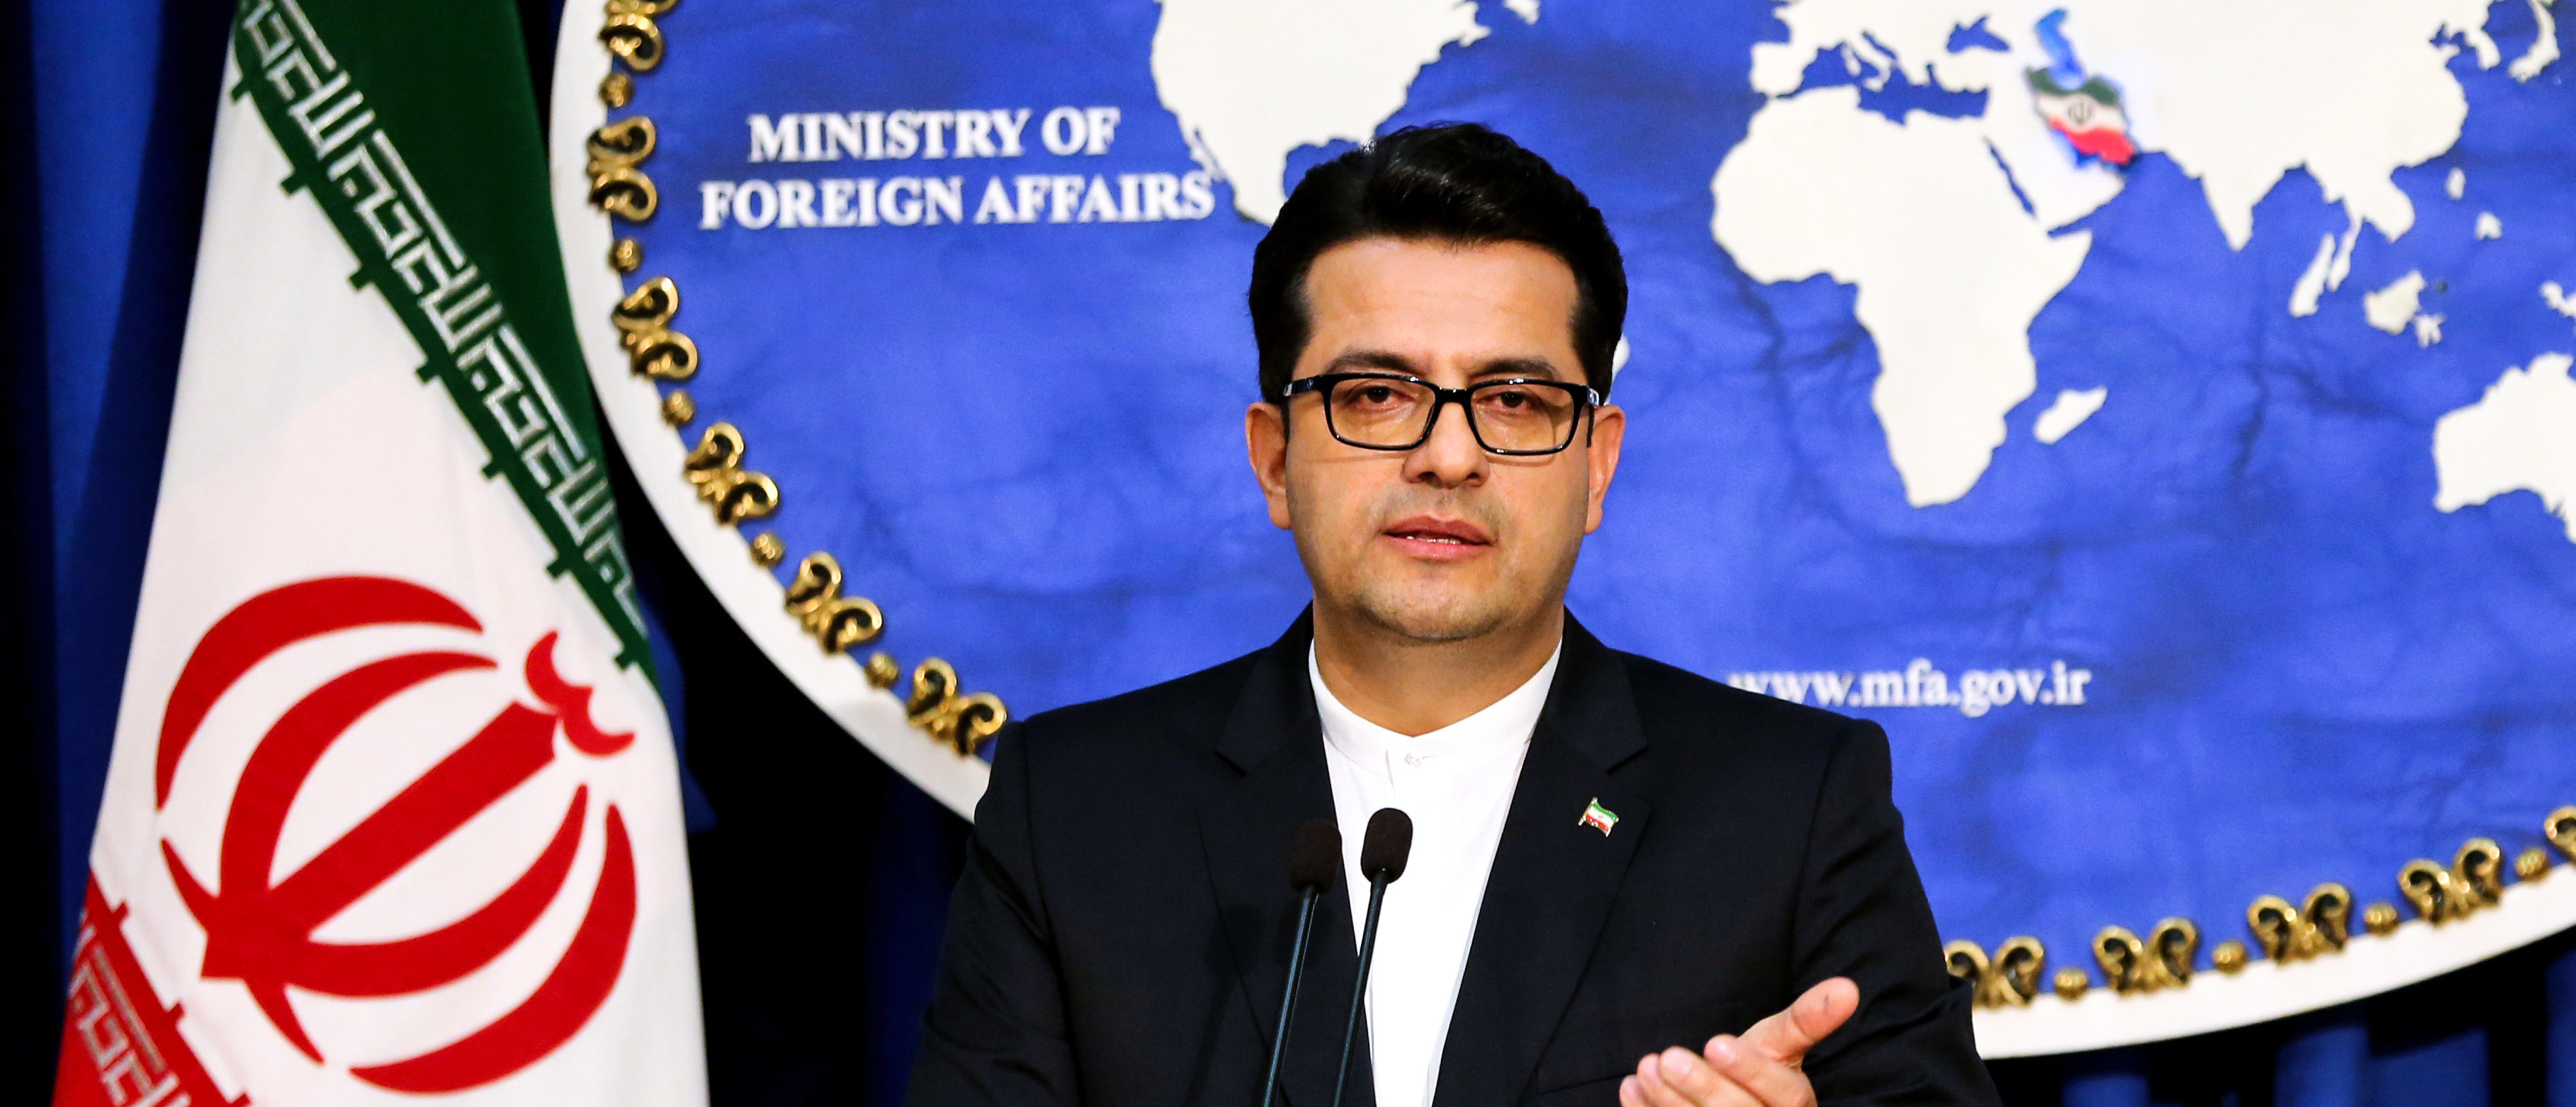 Abbas Mousavi, spokesman for Iran's Foreign Ministry, gives a press conference in the capital Tehran on May 28, 2019. (Photo by ATTA KENARE / AFP) (Photo by ATTA KENARE/AFP via Getty Images)